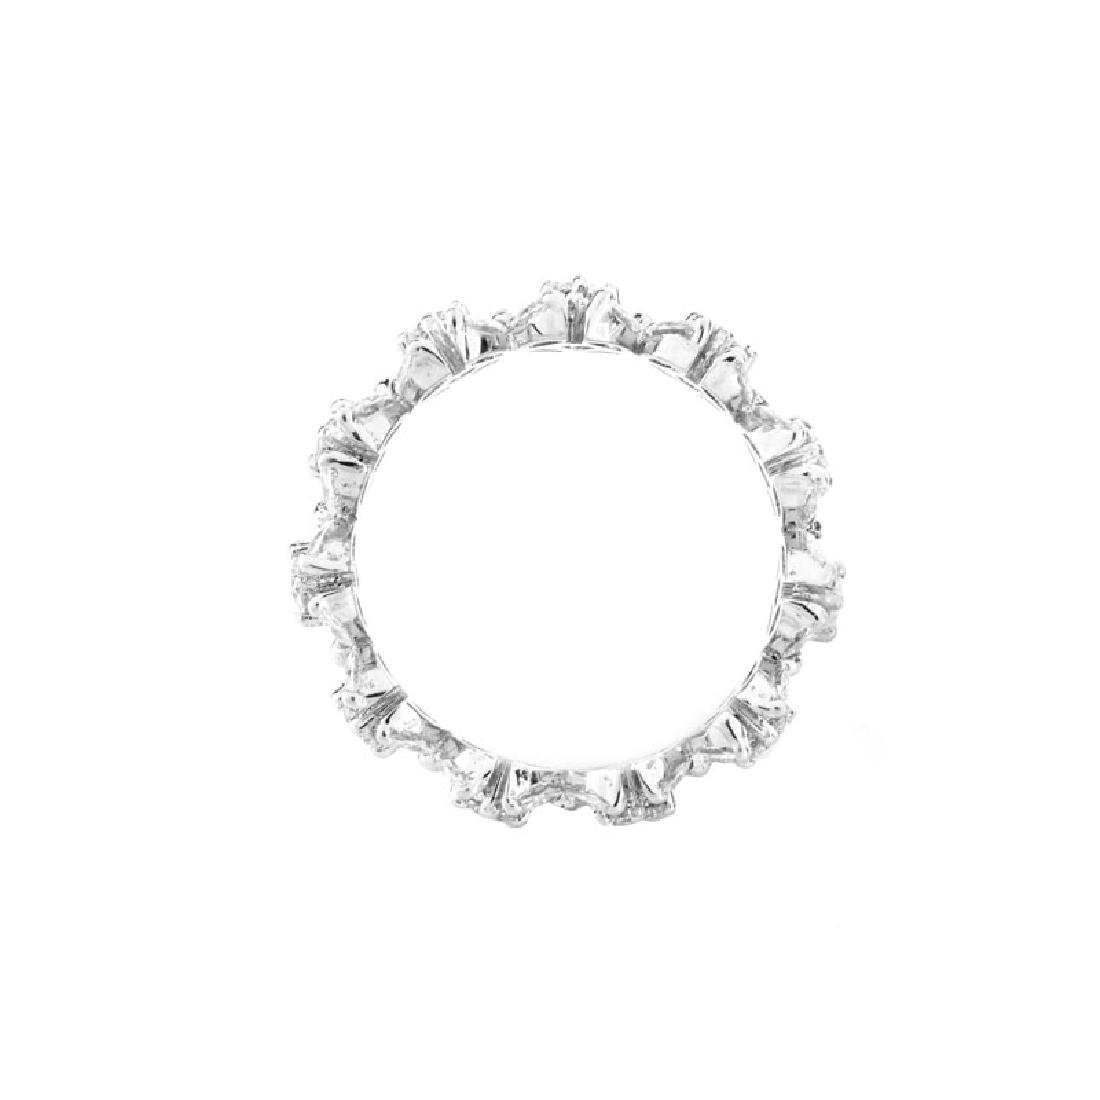 Approx. 2.80 Carat TW Marquise and Round Brilliant Cut - 4